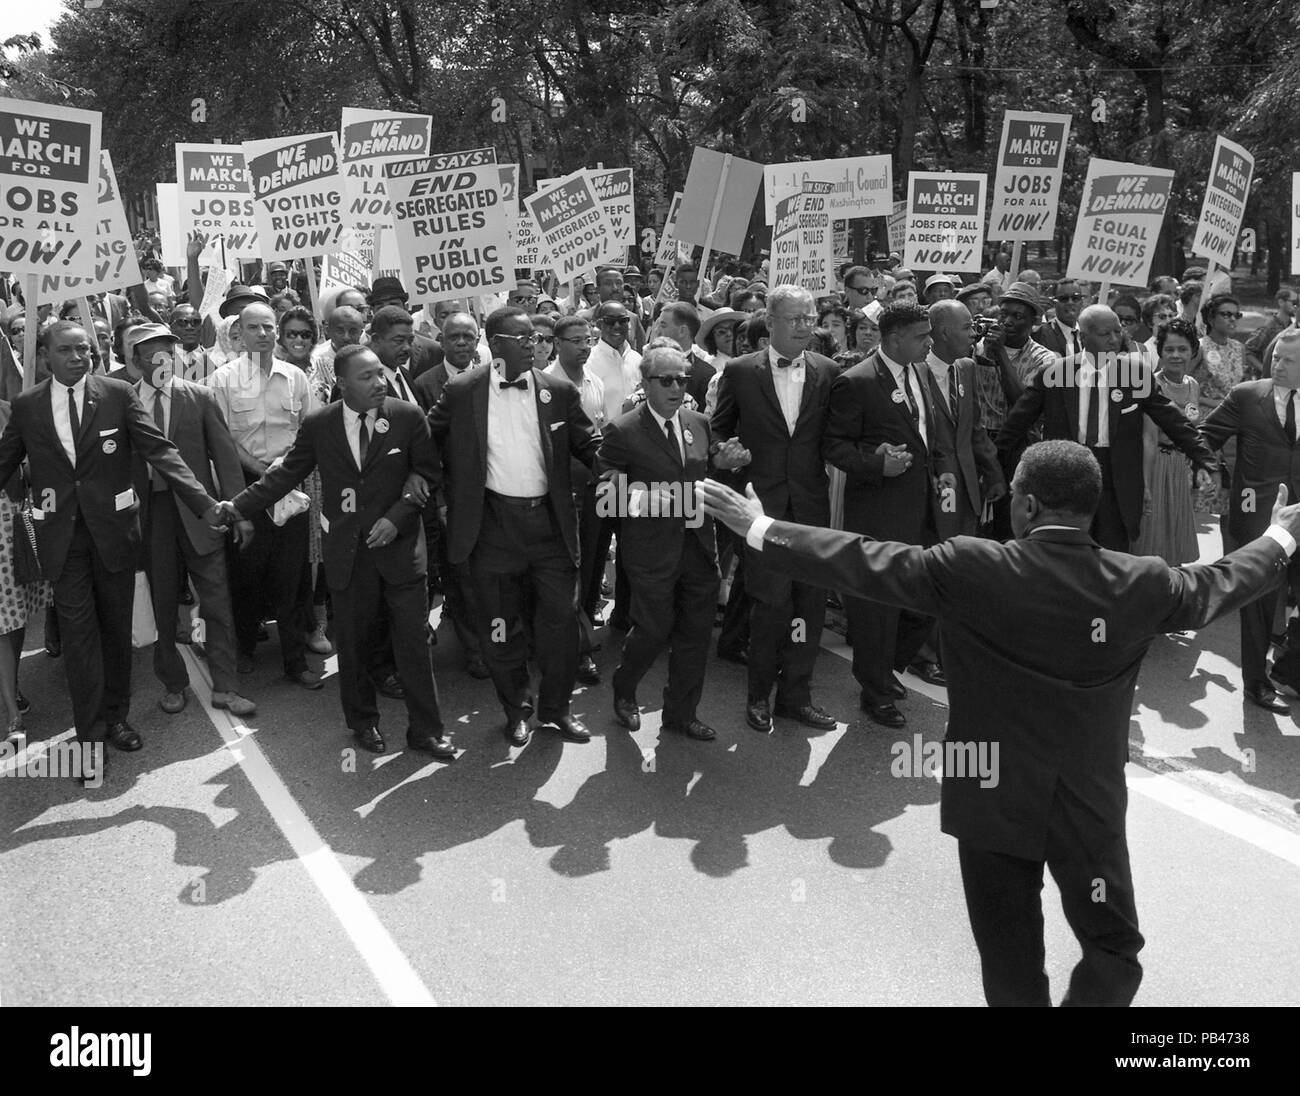 Martin Luther King, Jr. and other civil rights leaders at the head of the March on Washington for Jobs and Freedom on August 28,1963. The march ended at the Lincoln Memorial, where Dr. King delivered his 'I Have a Dream' speech. - Stock Image